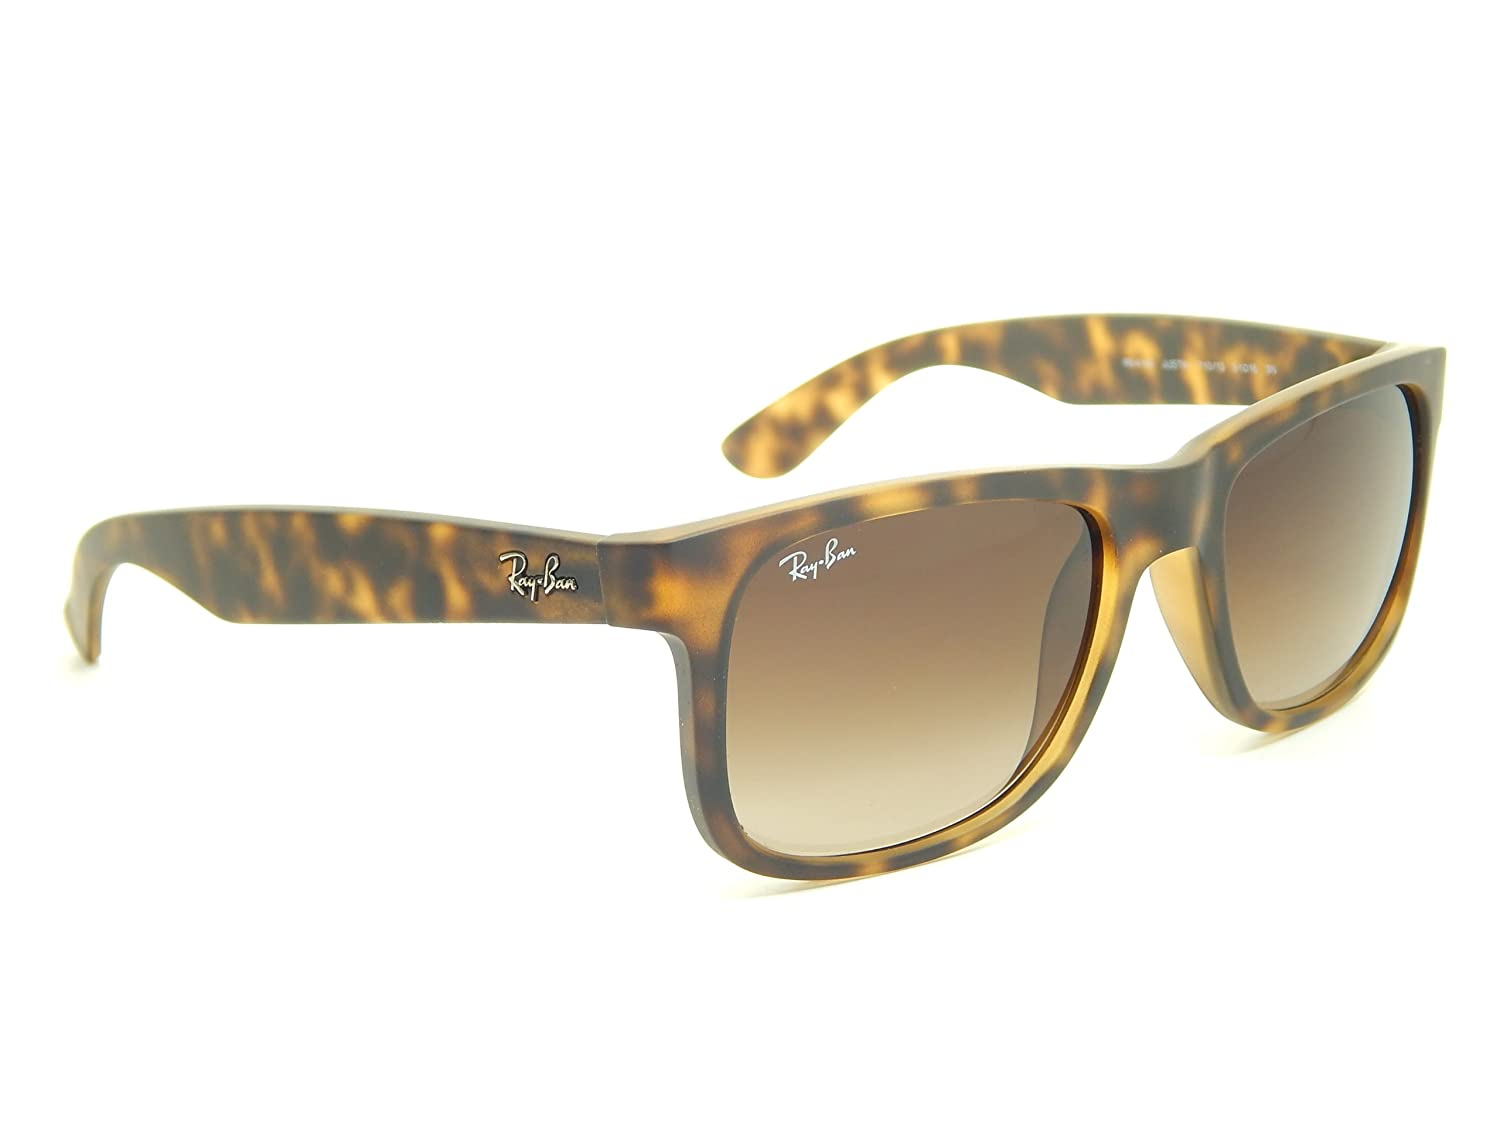 2aba5149c2e New Ray Ban Justin RB4165 710 13 Tortoise  Brown Gradient 55mm Sunglasses   Amazon.co.uk  Clothing